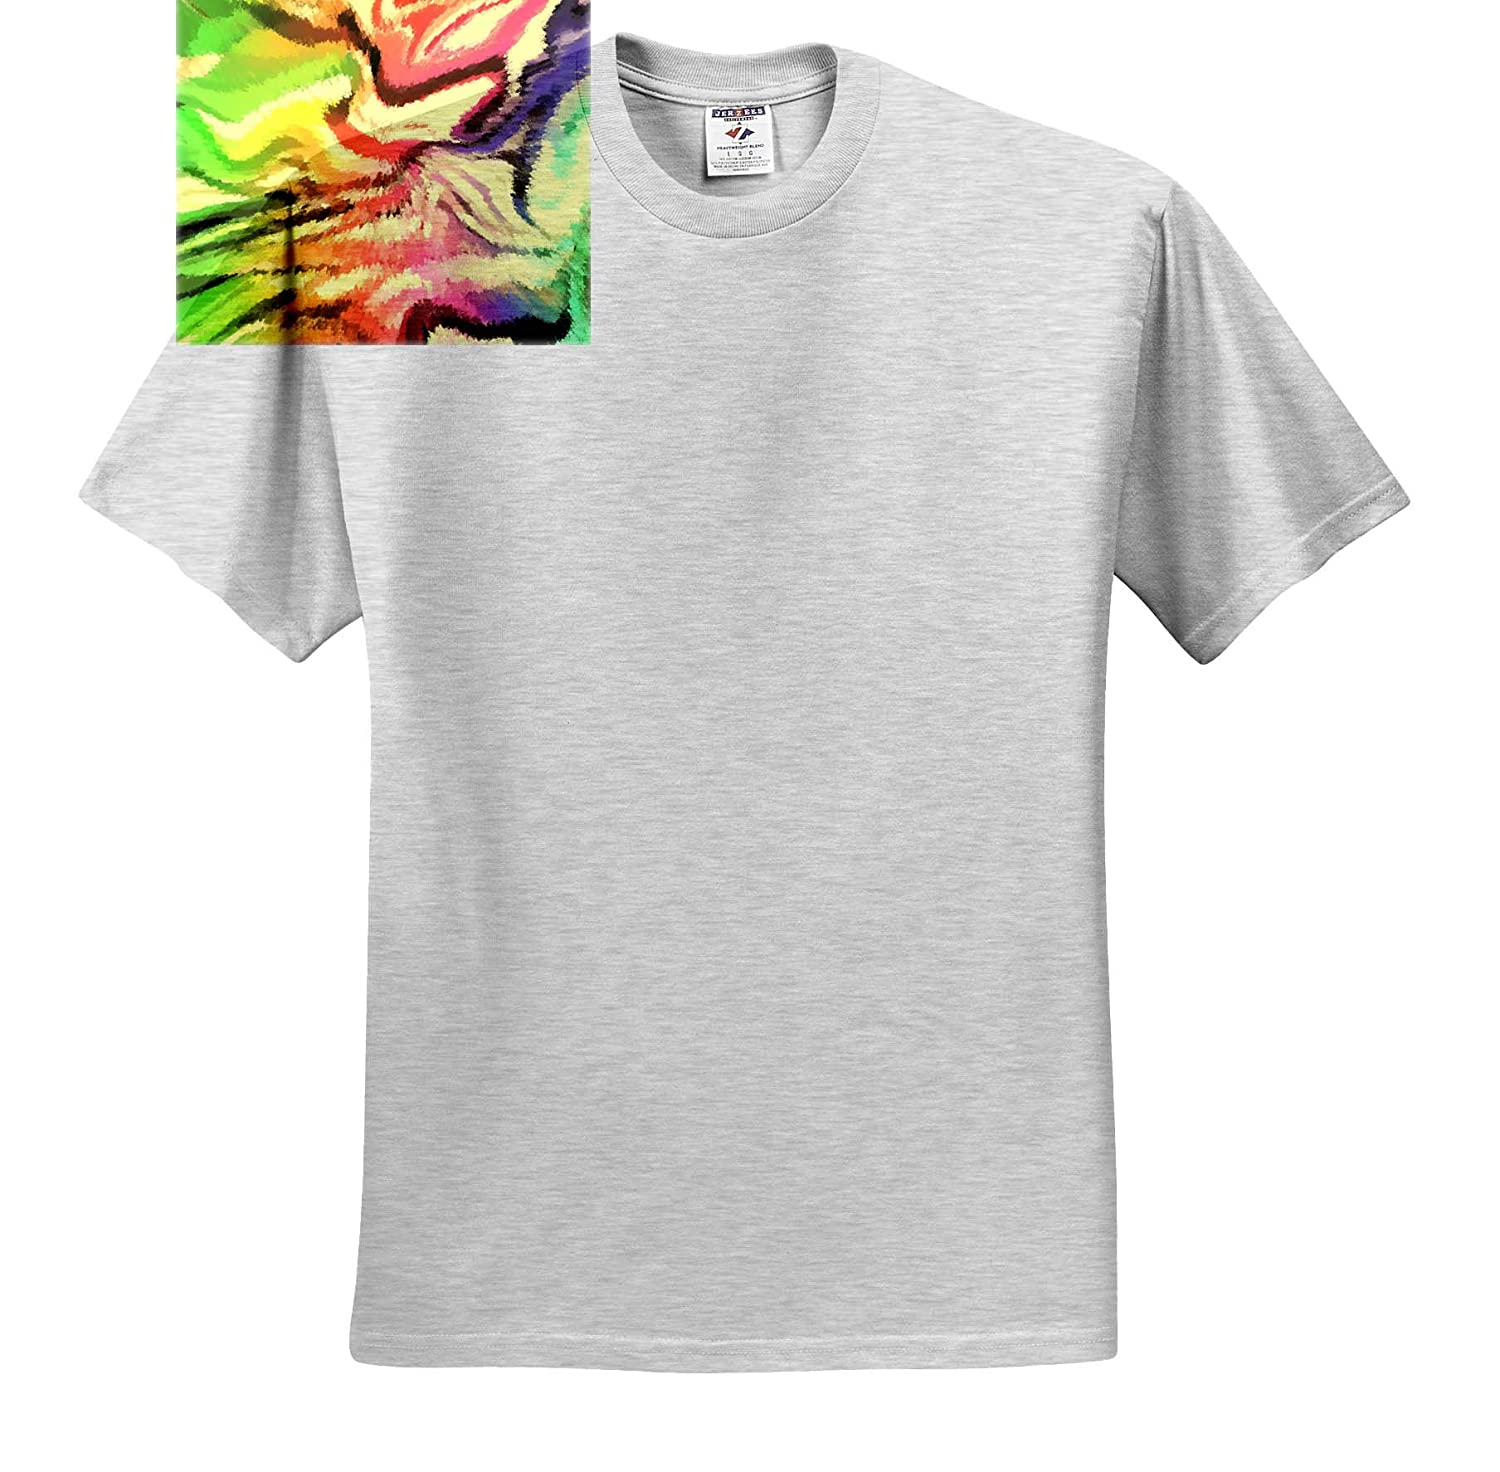 3dRose Lens Art by Florene Digital Painting T-Shirts Image of Abstract Lime Purple and Yellow Painting